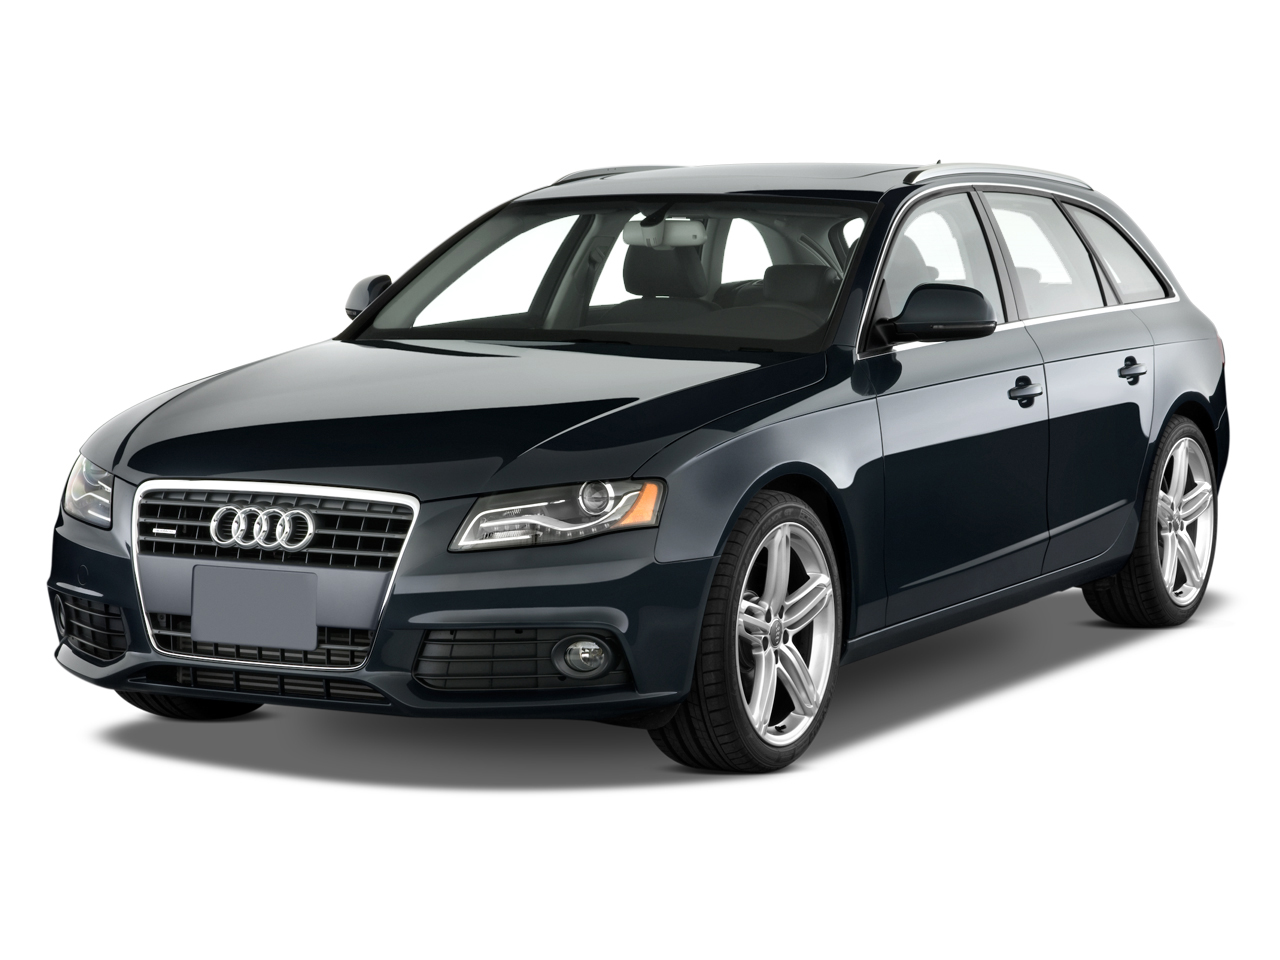 2011 audi a4 review ratings specs prices and photos the car connection. Black Bedroom Furniture Sets. Home Design Ideas